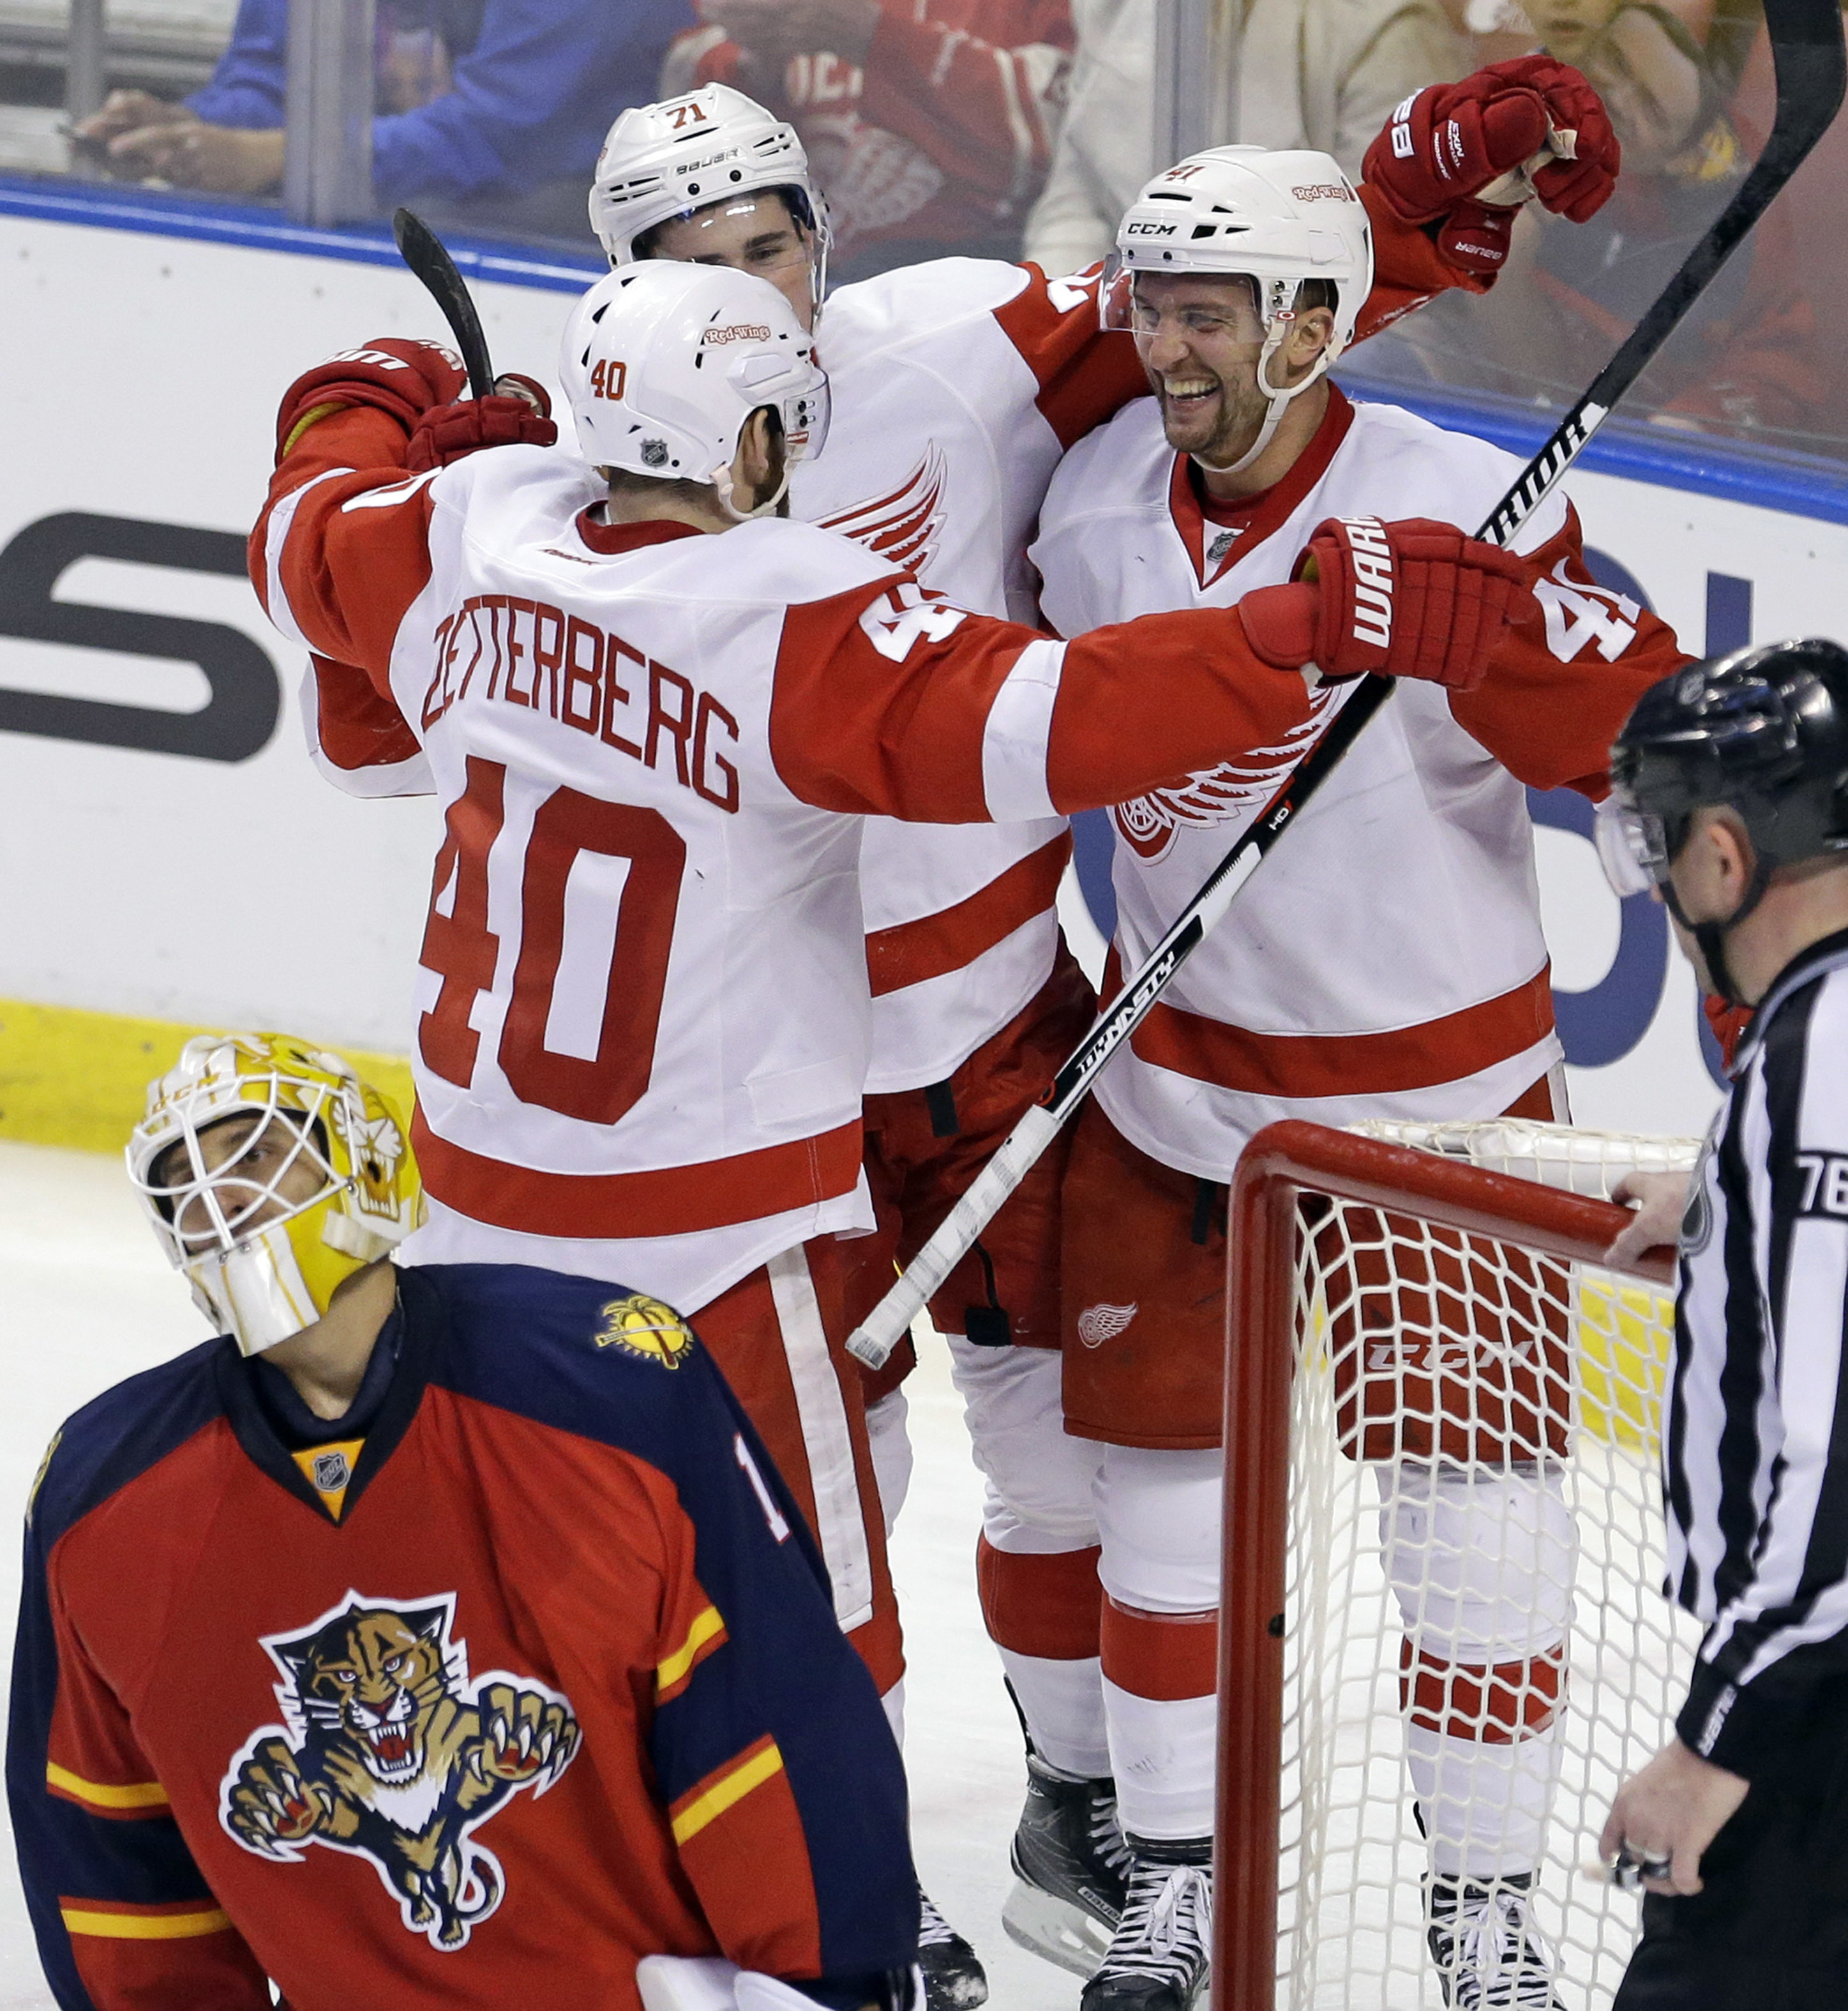 Detroit Red Wings center Luke Glendening (41) is congratulated by teammates after scoring a goal against Florida Panthers goalie Roberto Luongo (1) during the third period of an NHL hockey game in Sunrise, Fla., Saturday, March 19, 2016. (AP Photo/Alan Di